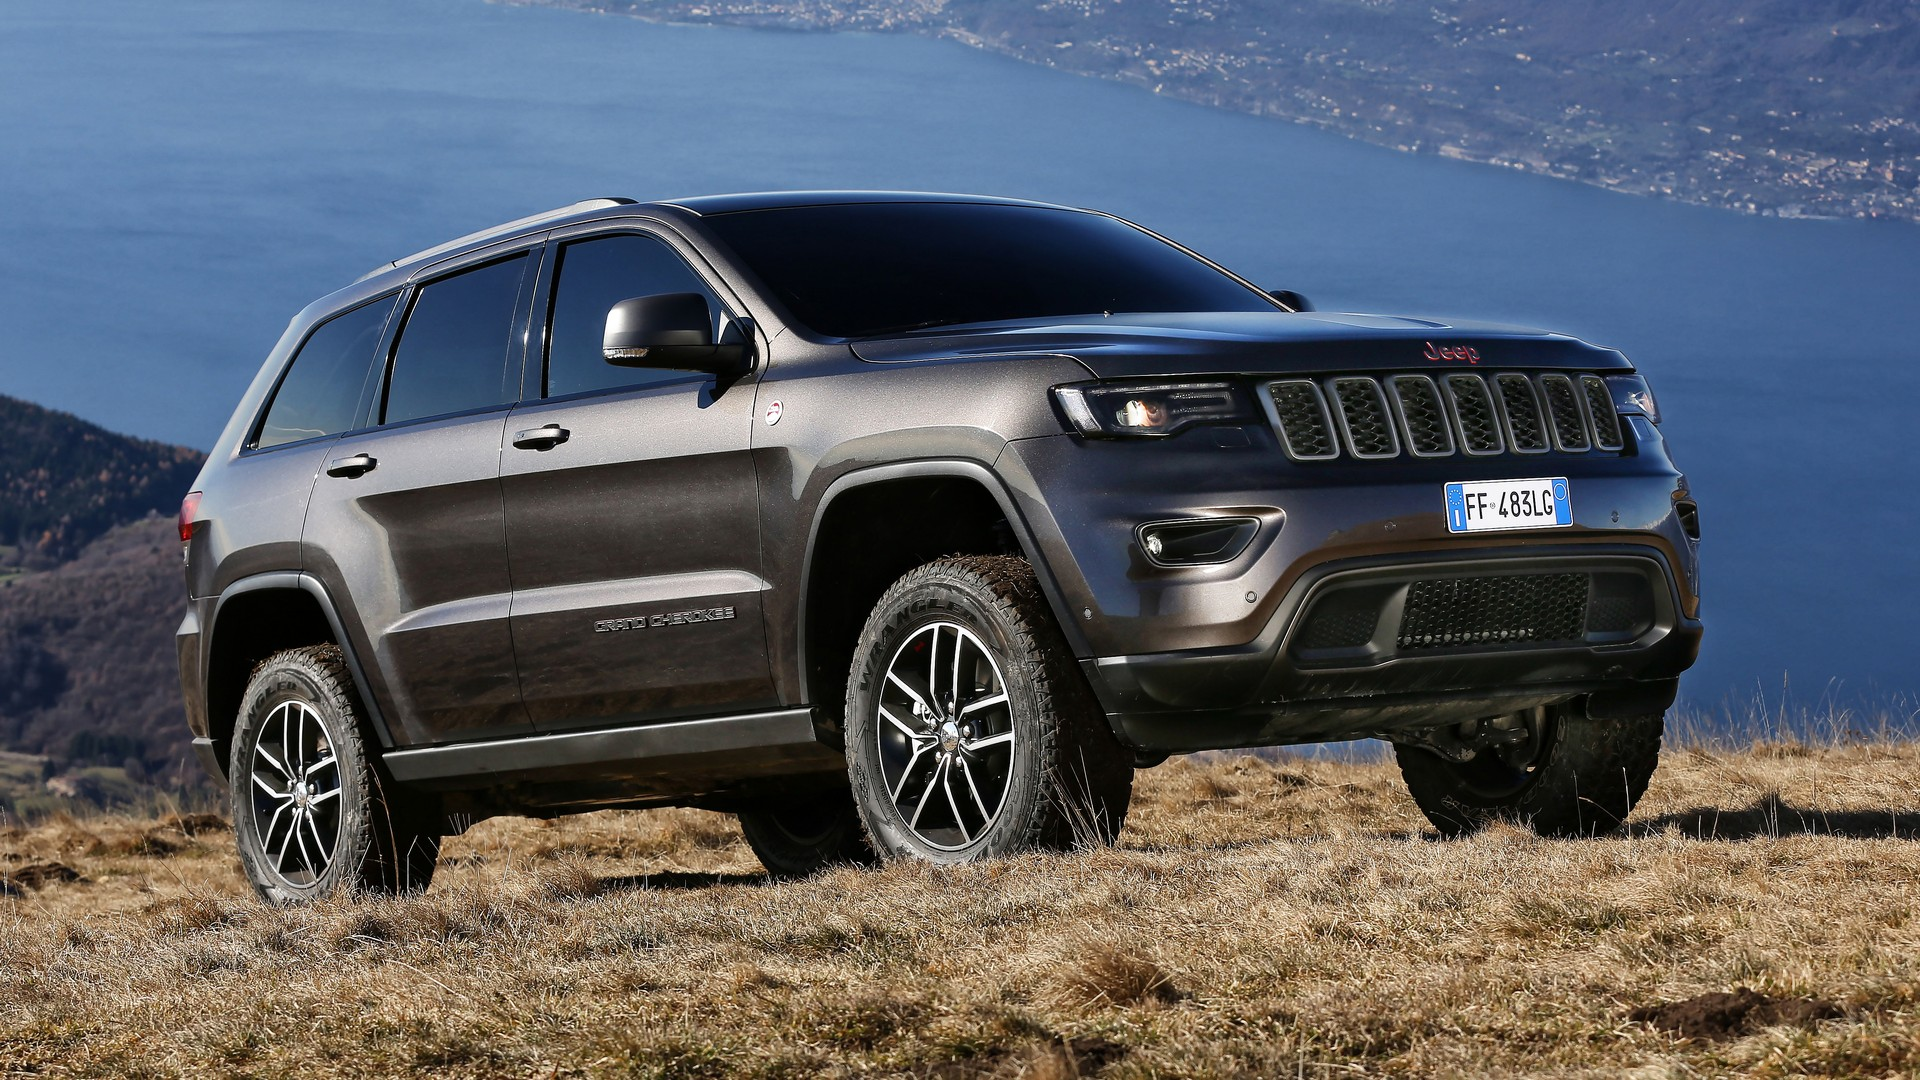 jeep grand cherokee my17. Black Bedroom Furniture Sets. Home Design Ideas